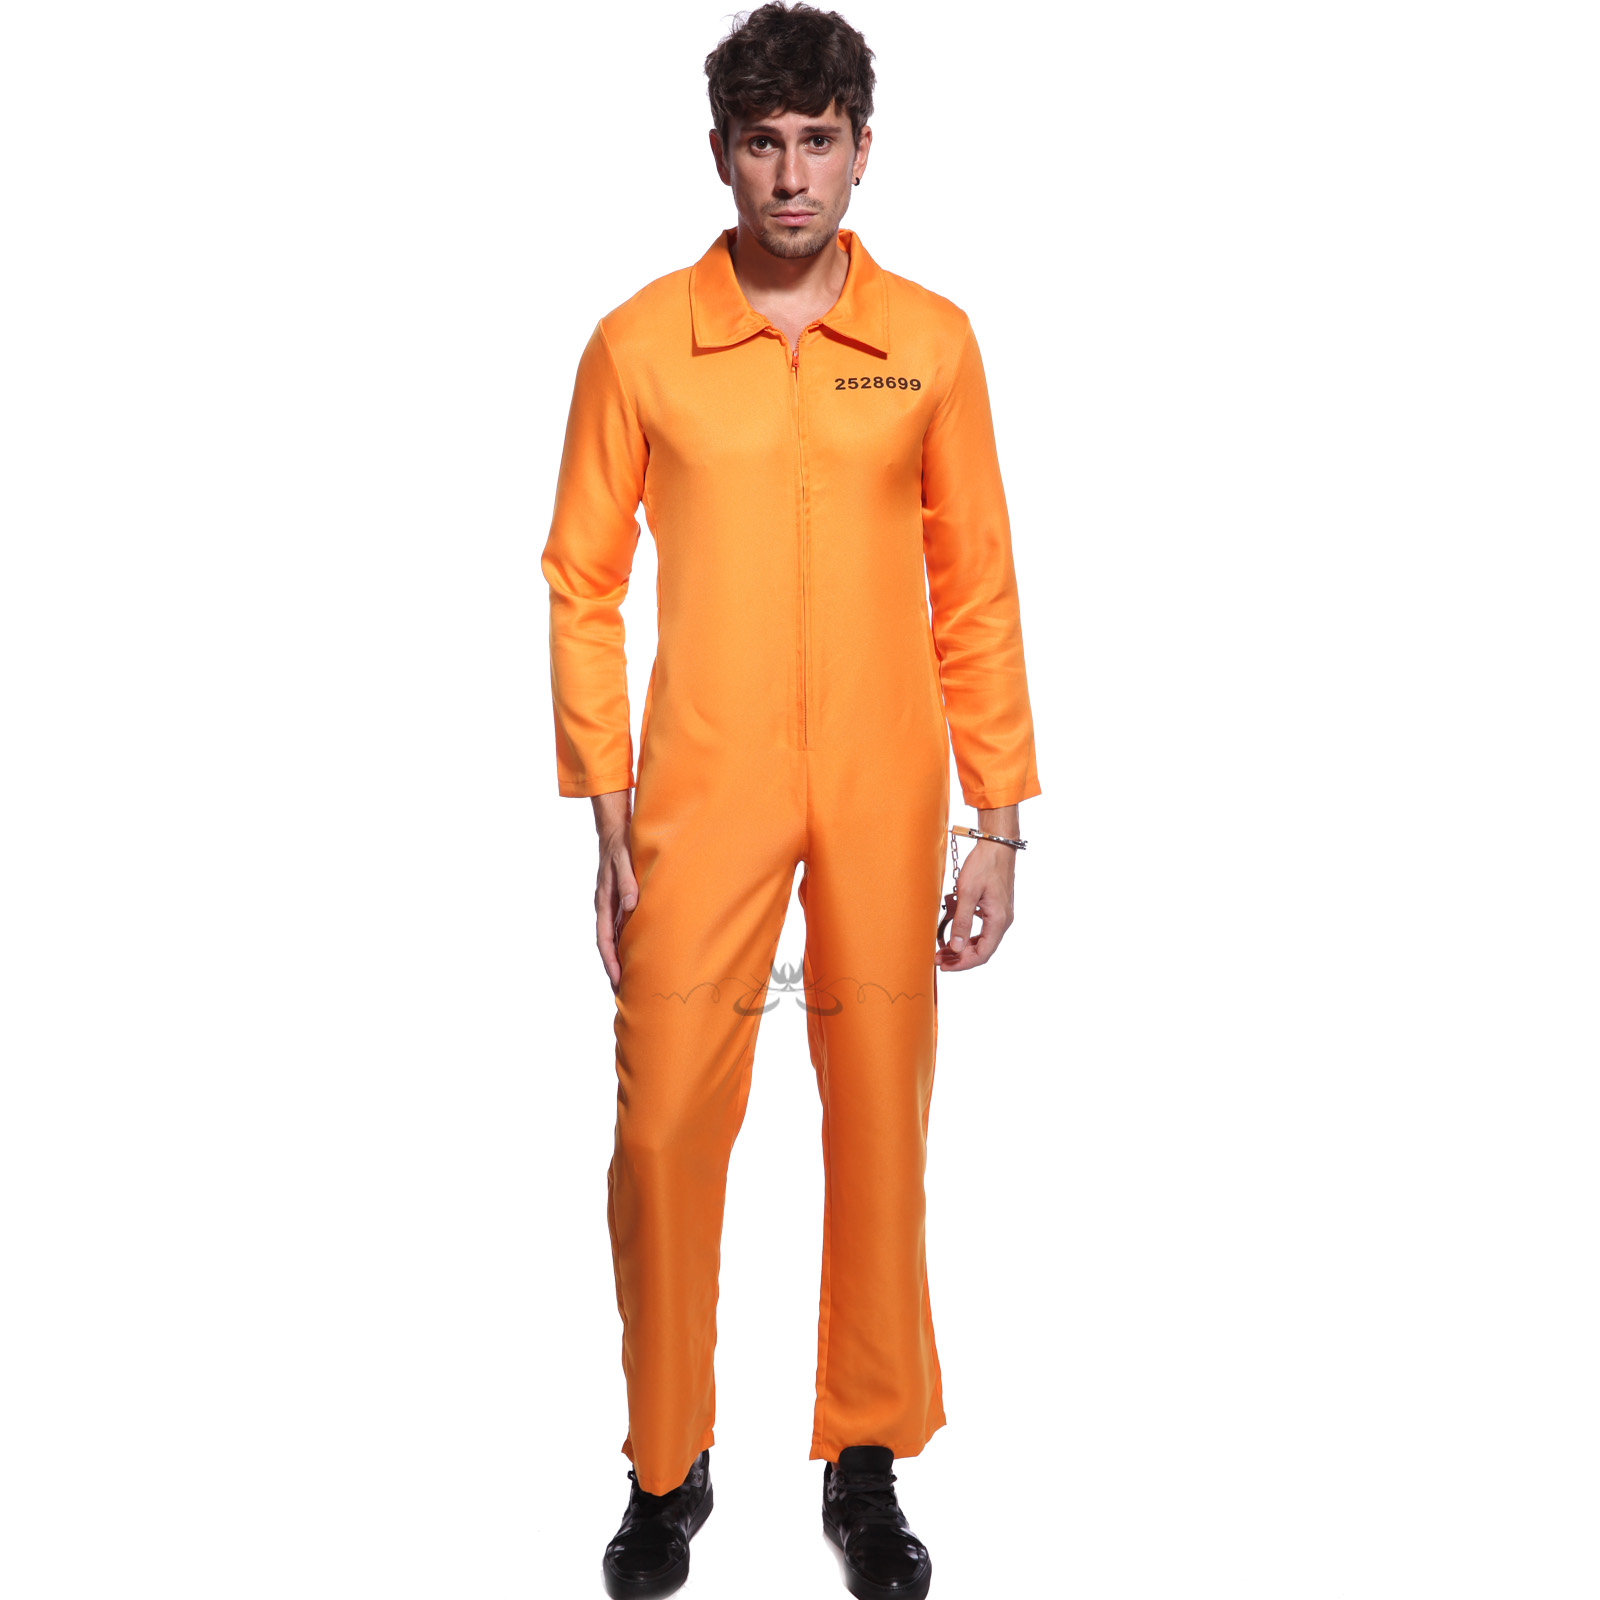 Mens Womens Convict Costume Jail Jumpsuit Orange Prisoner Black ...